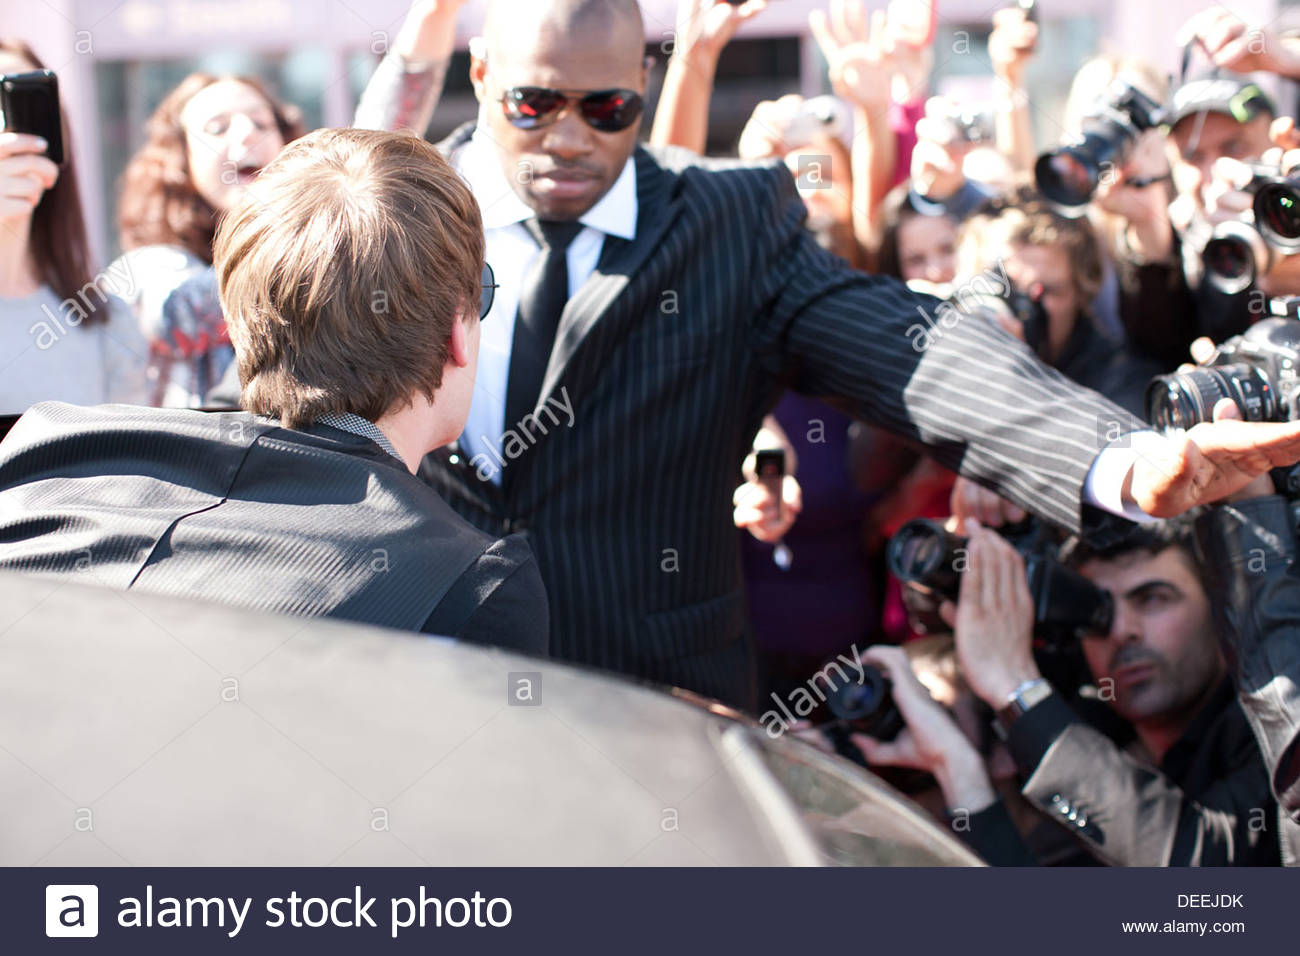 Celebrity emerging from limo toward paparazzi - Stock Image